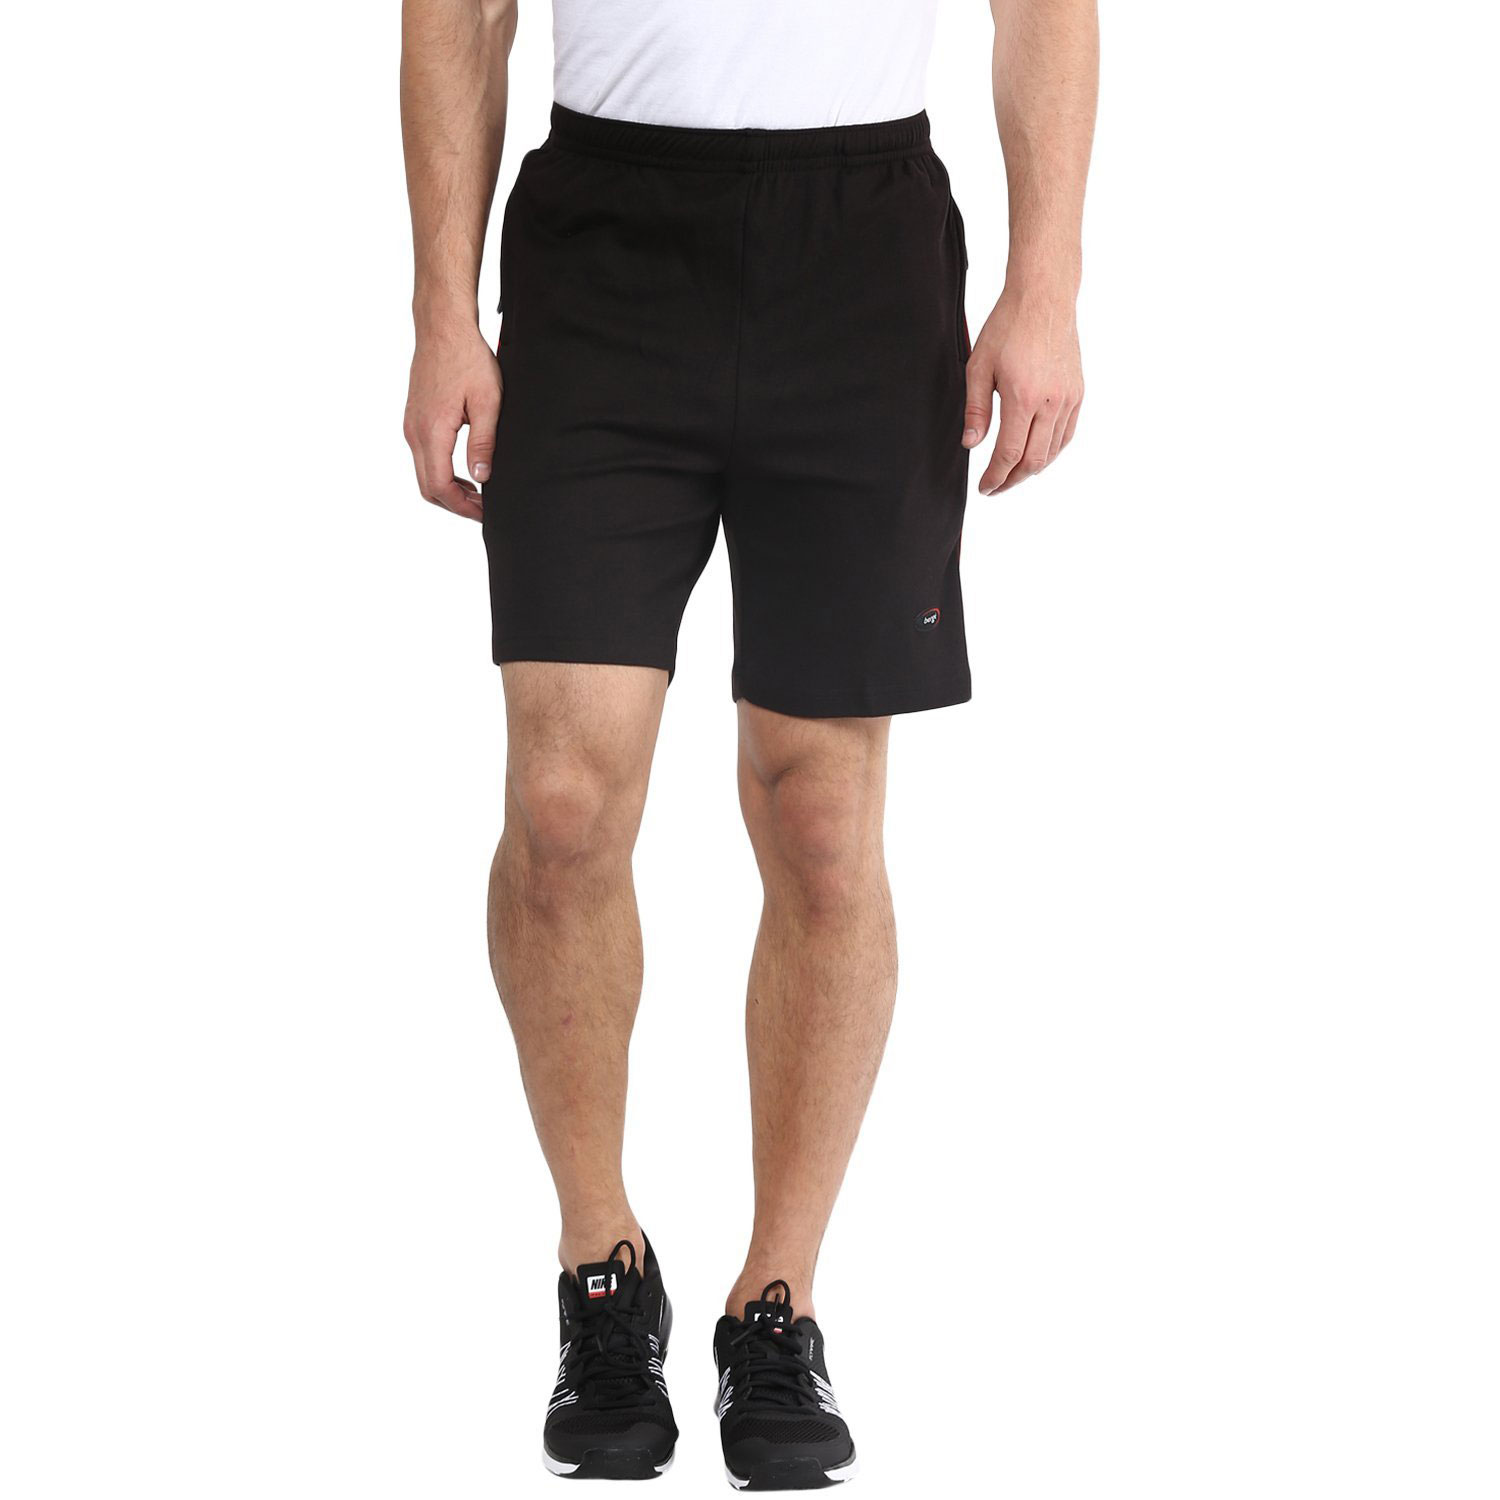 Berge Men's Black Knits Long Shorts With Secure Zipper Pockets